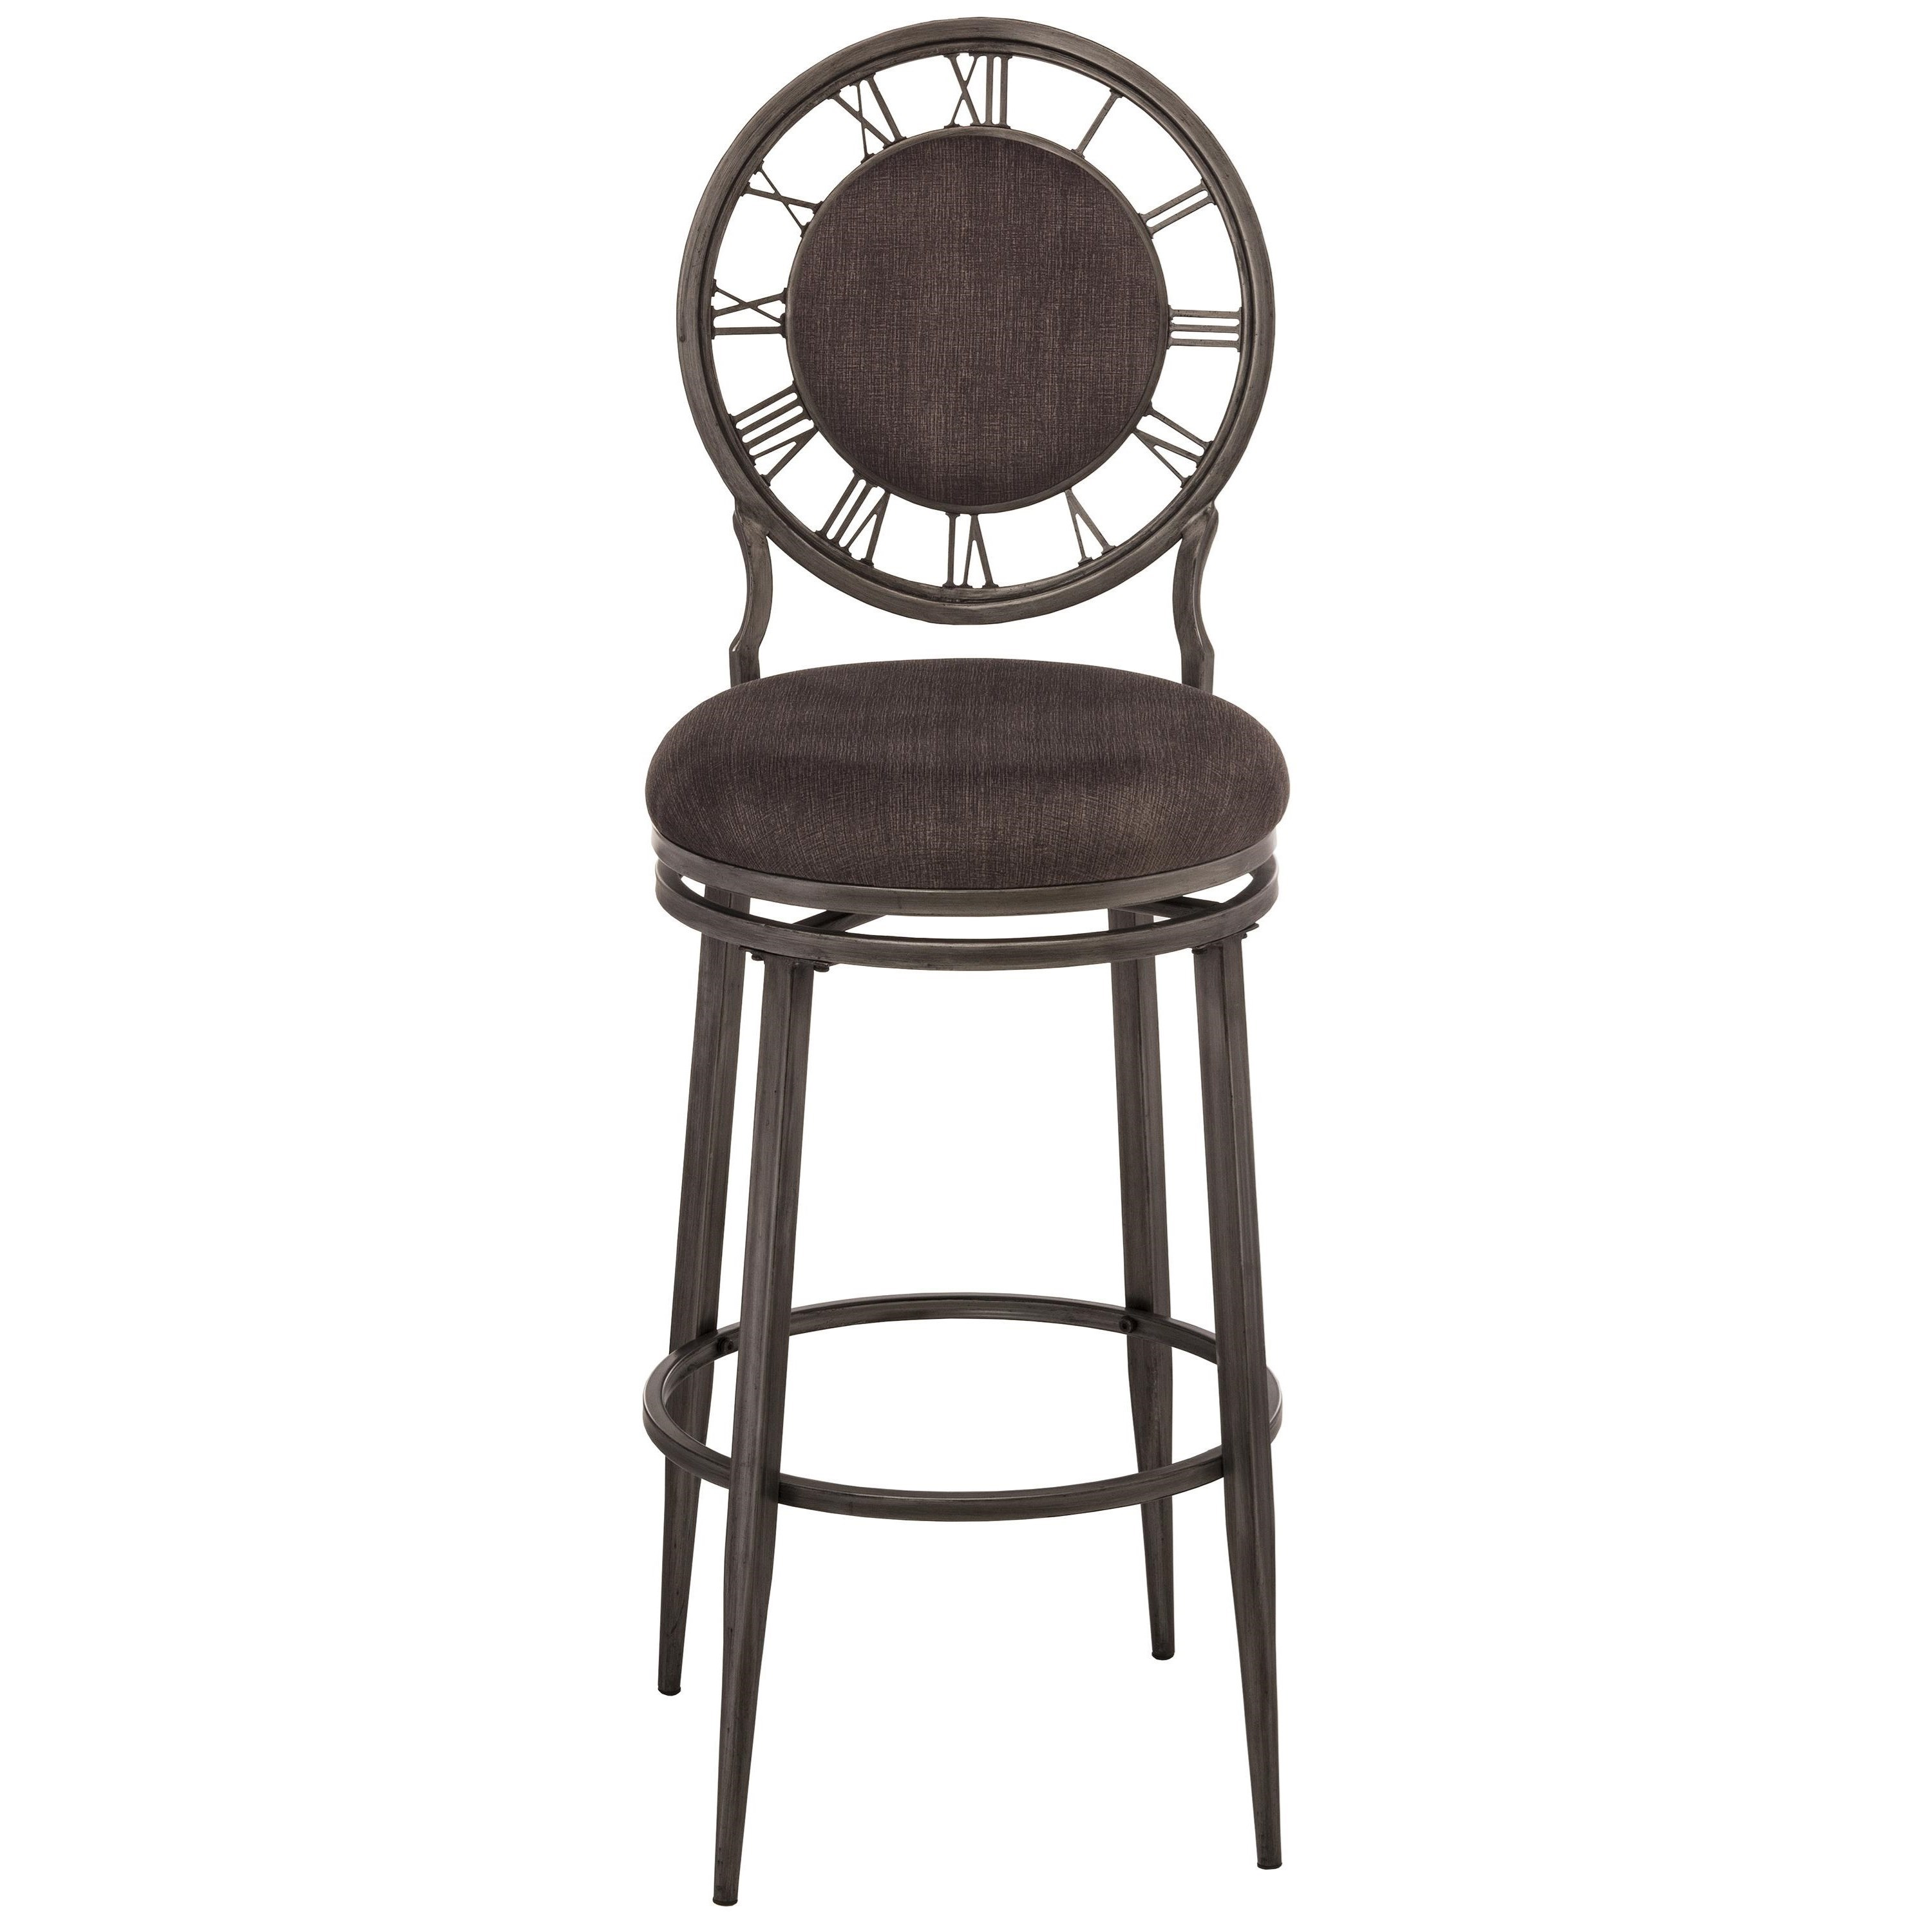 Hillsdale Metal Stools Swivel Counter Stool  - Item Number: 5905-826